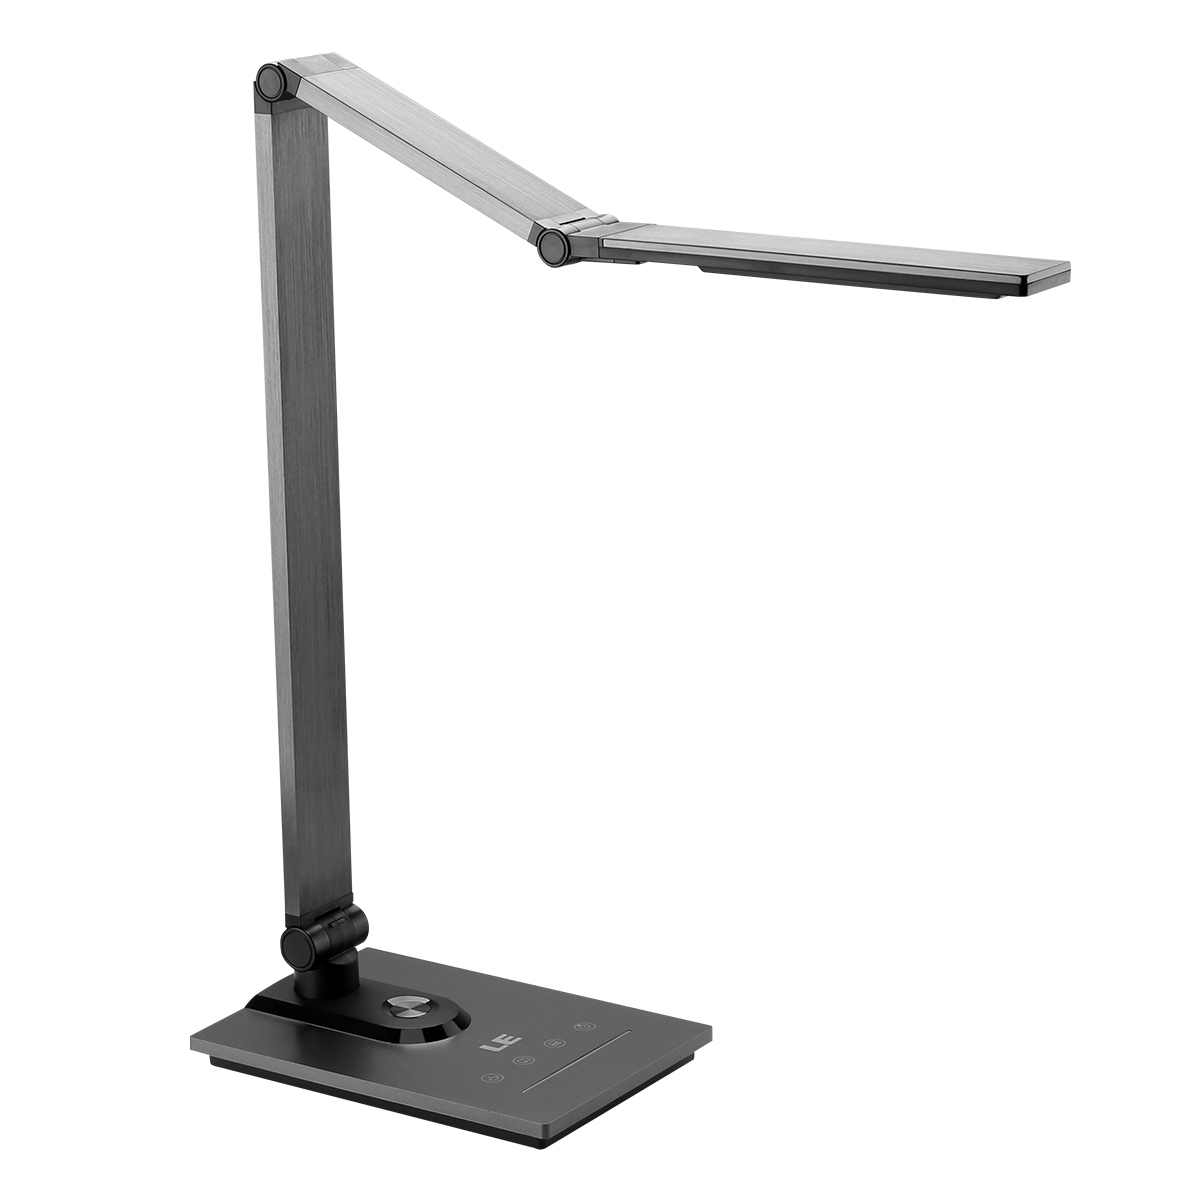 Le Metal Led Desk Lamp Dimmable 3 Color Modes With Usb Output Port Memory Function Timer Touch Control Table Lamp For Reading Office Study in size 1200 X 1200